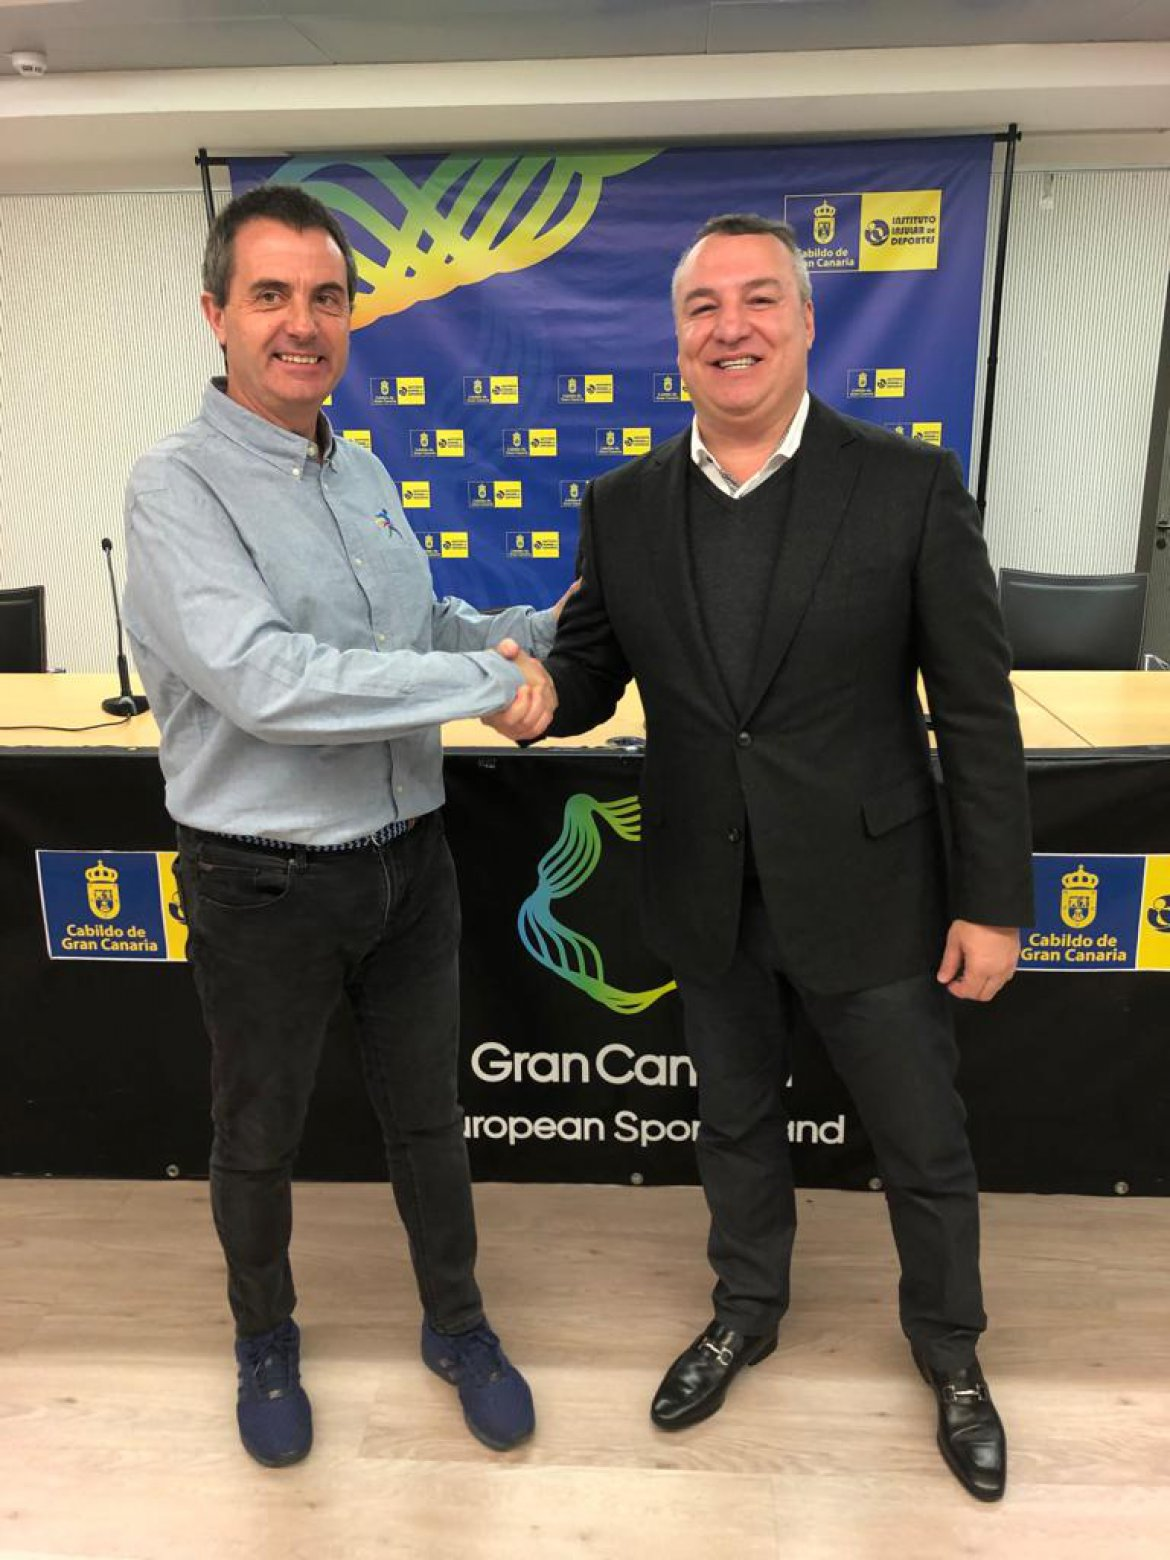 The members of UD Las Palmas will enjoy discounts for the Maratón Gran Canaria '20 LaLigaSports